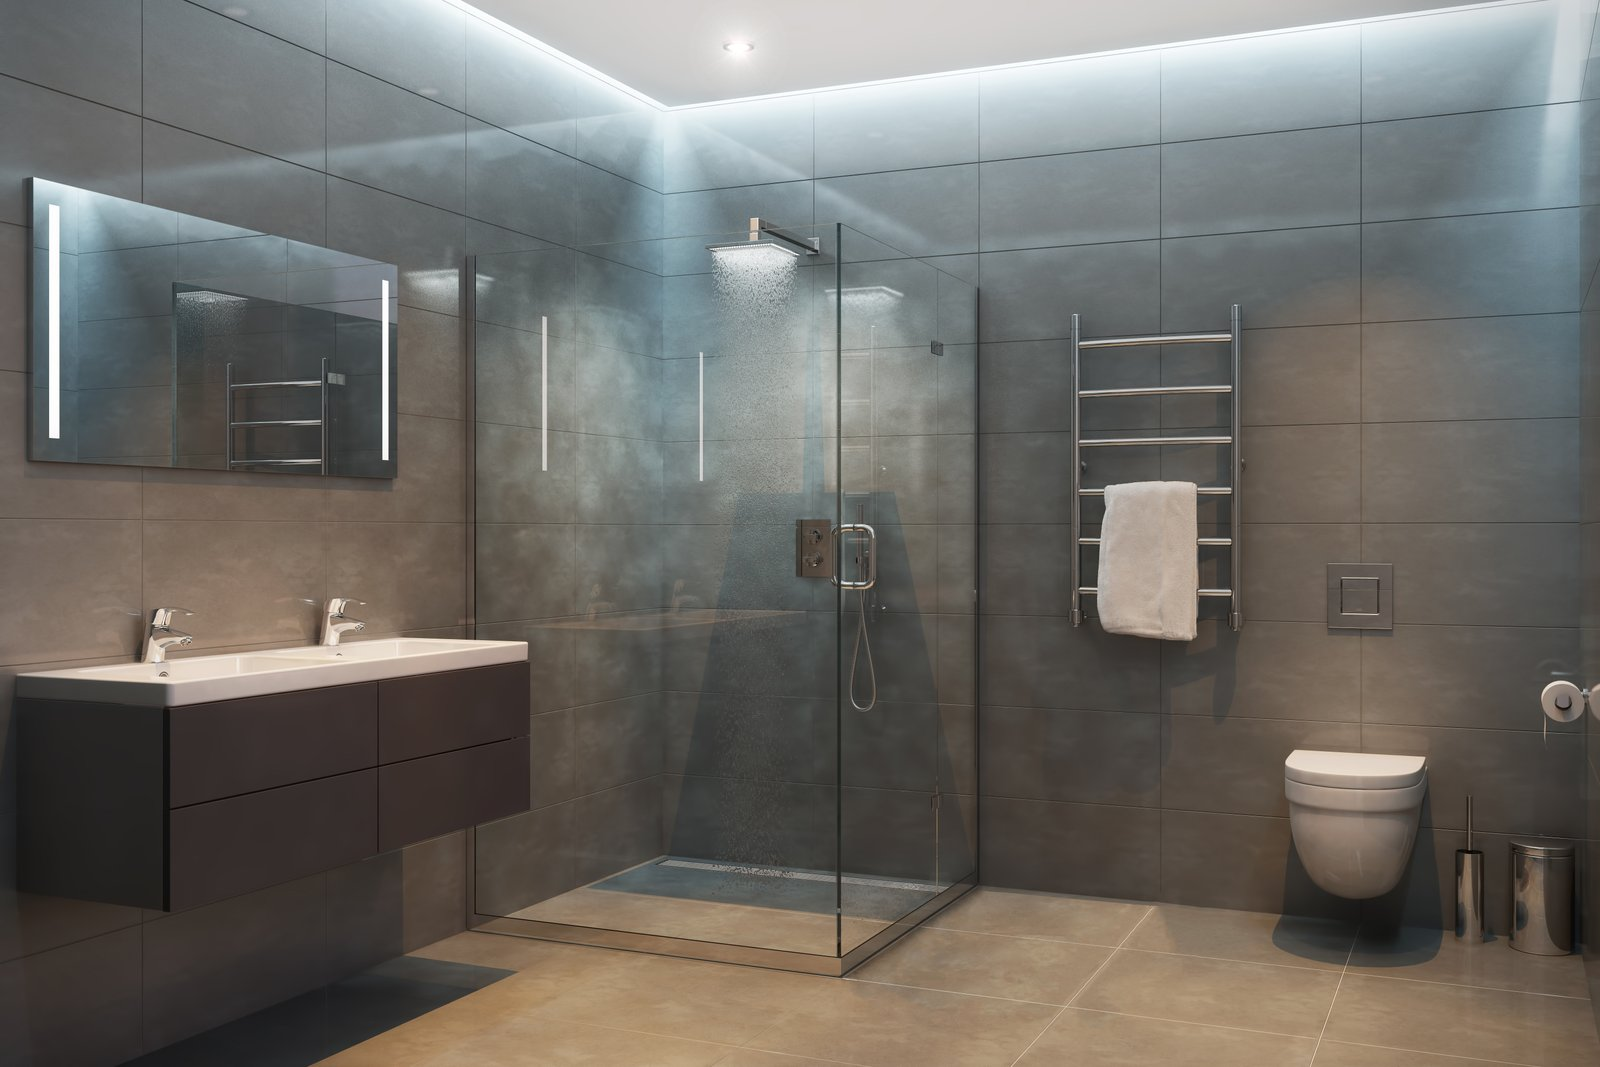 Floor Heating For Bathroom Showers Get Your Electric